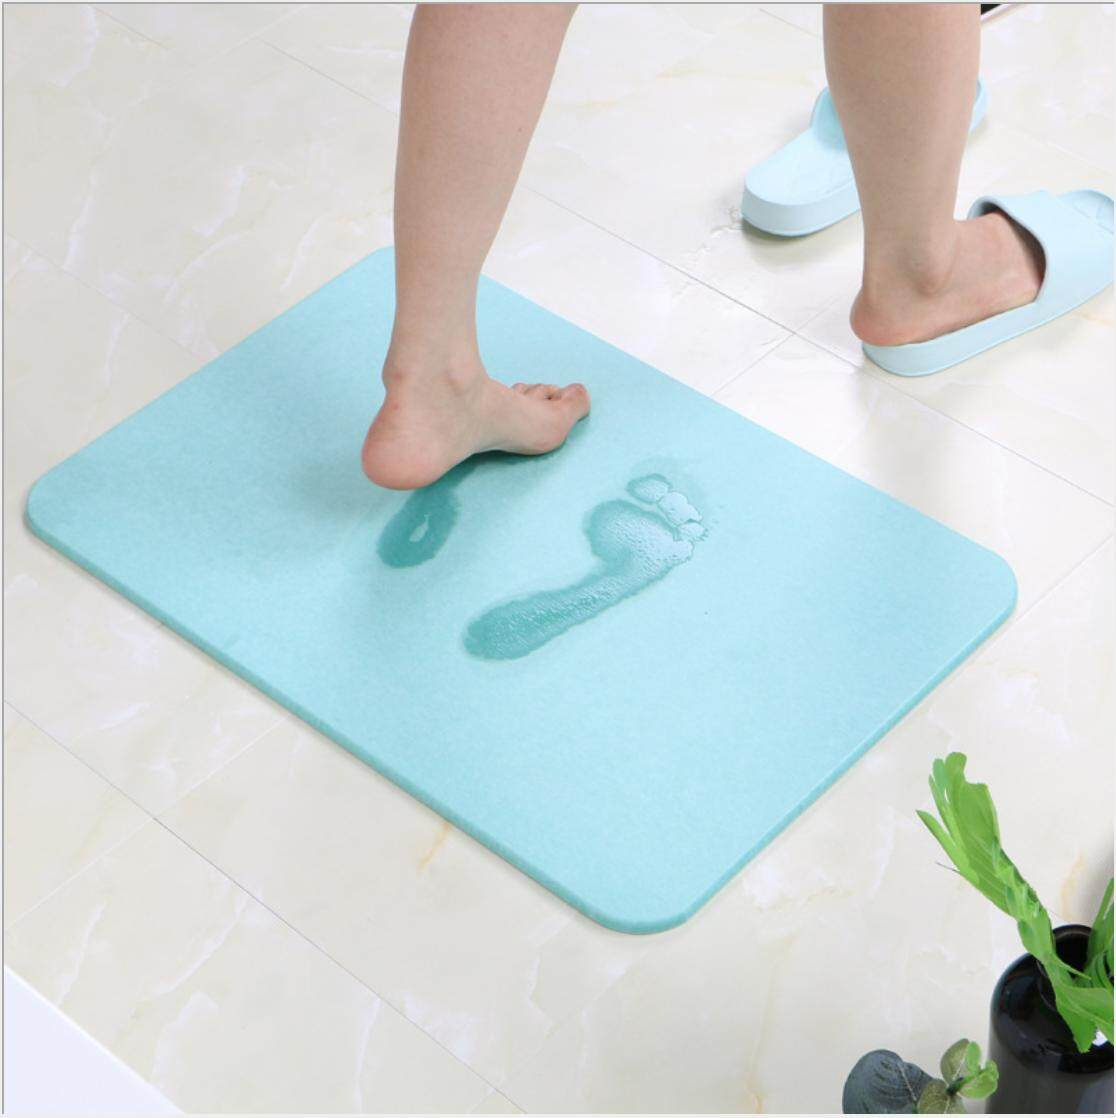 Home Bath Mats - Buy Home Bath Mats at Best Price in Malaysia | www ...